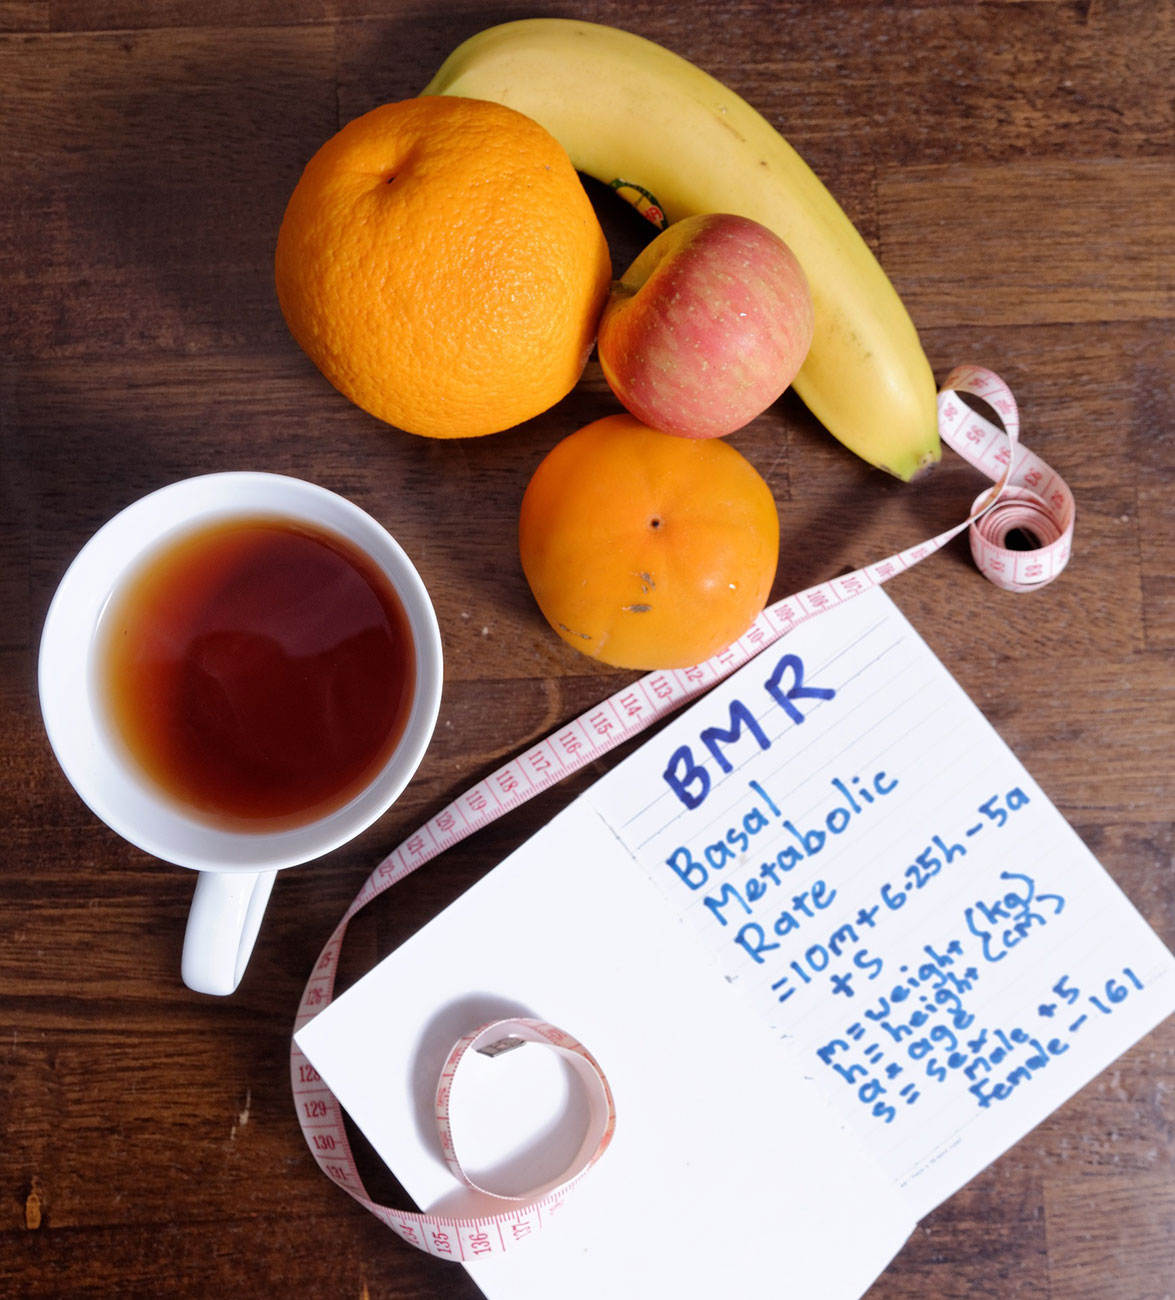 7 Tips to Speed Up Your Metabolism